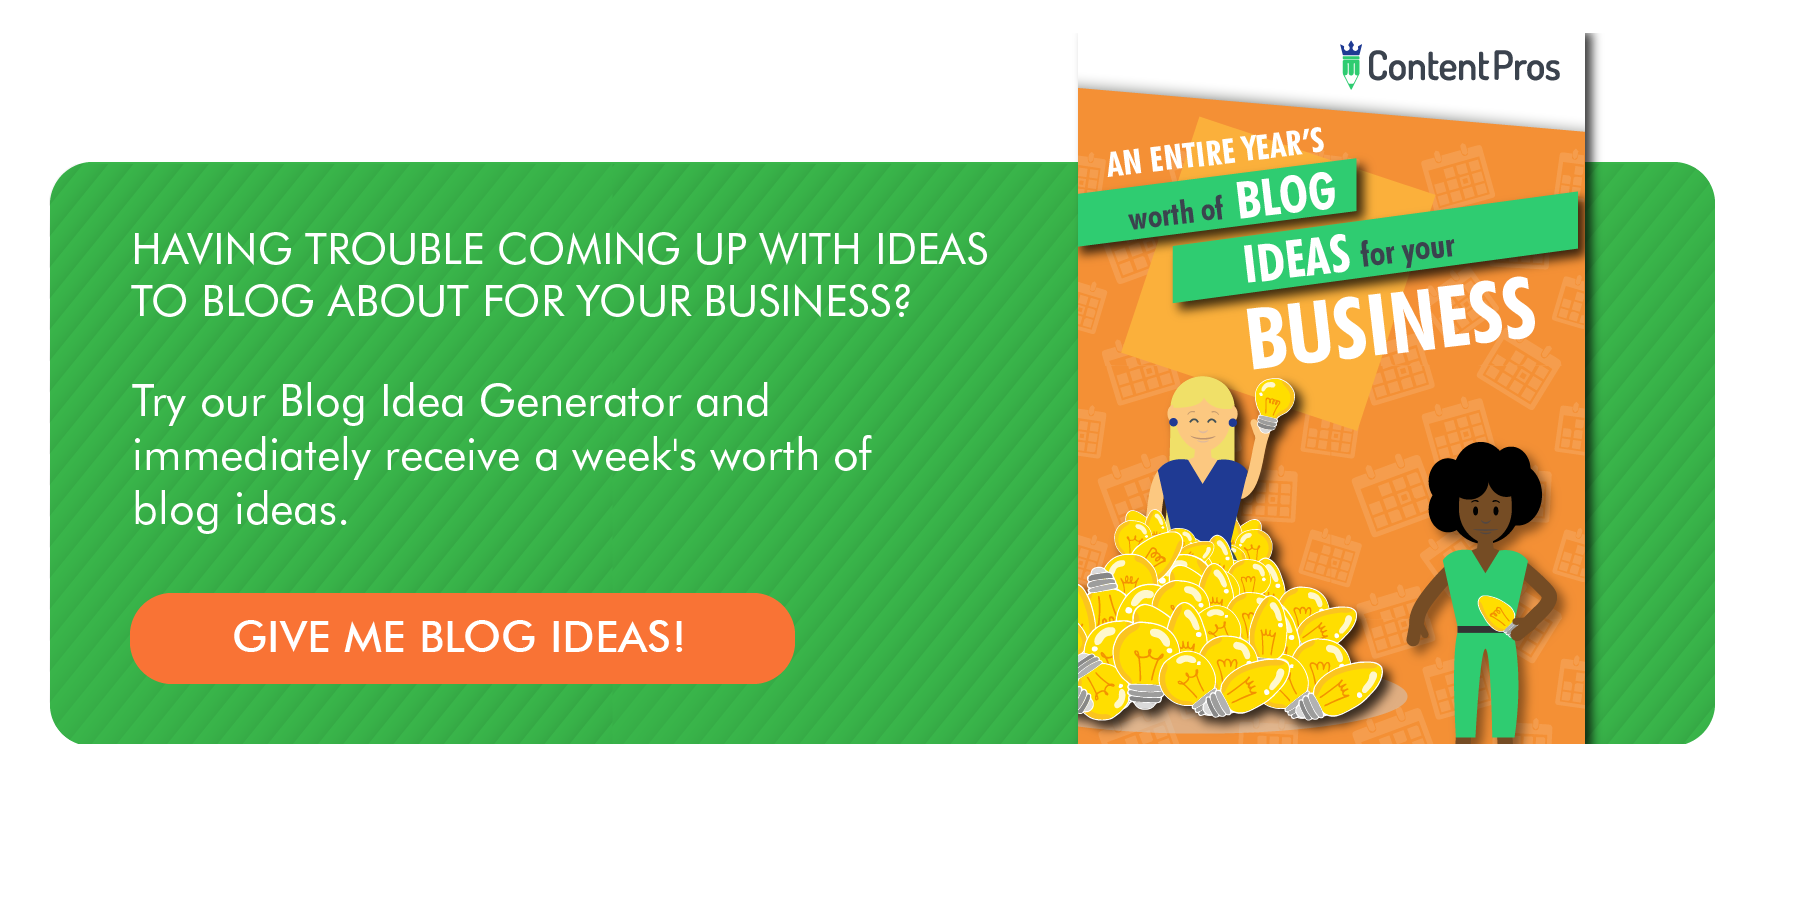 Blog Ideas for Your Business from Content Pros